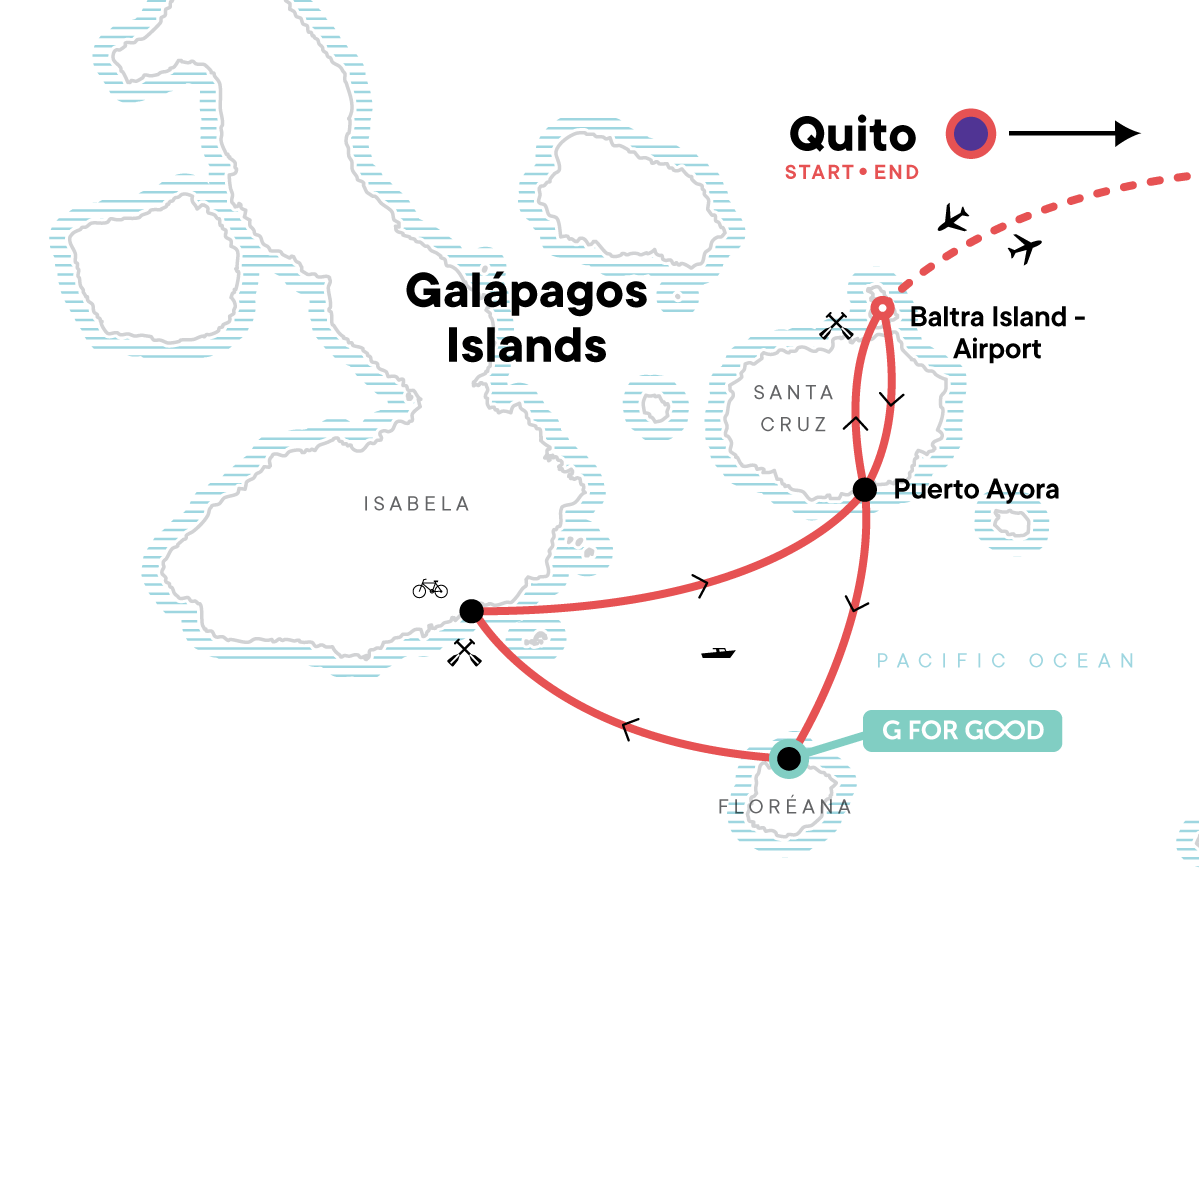 Galápagos Multisport with Quito Map